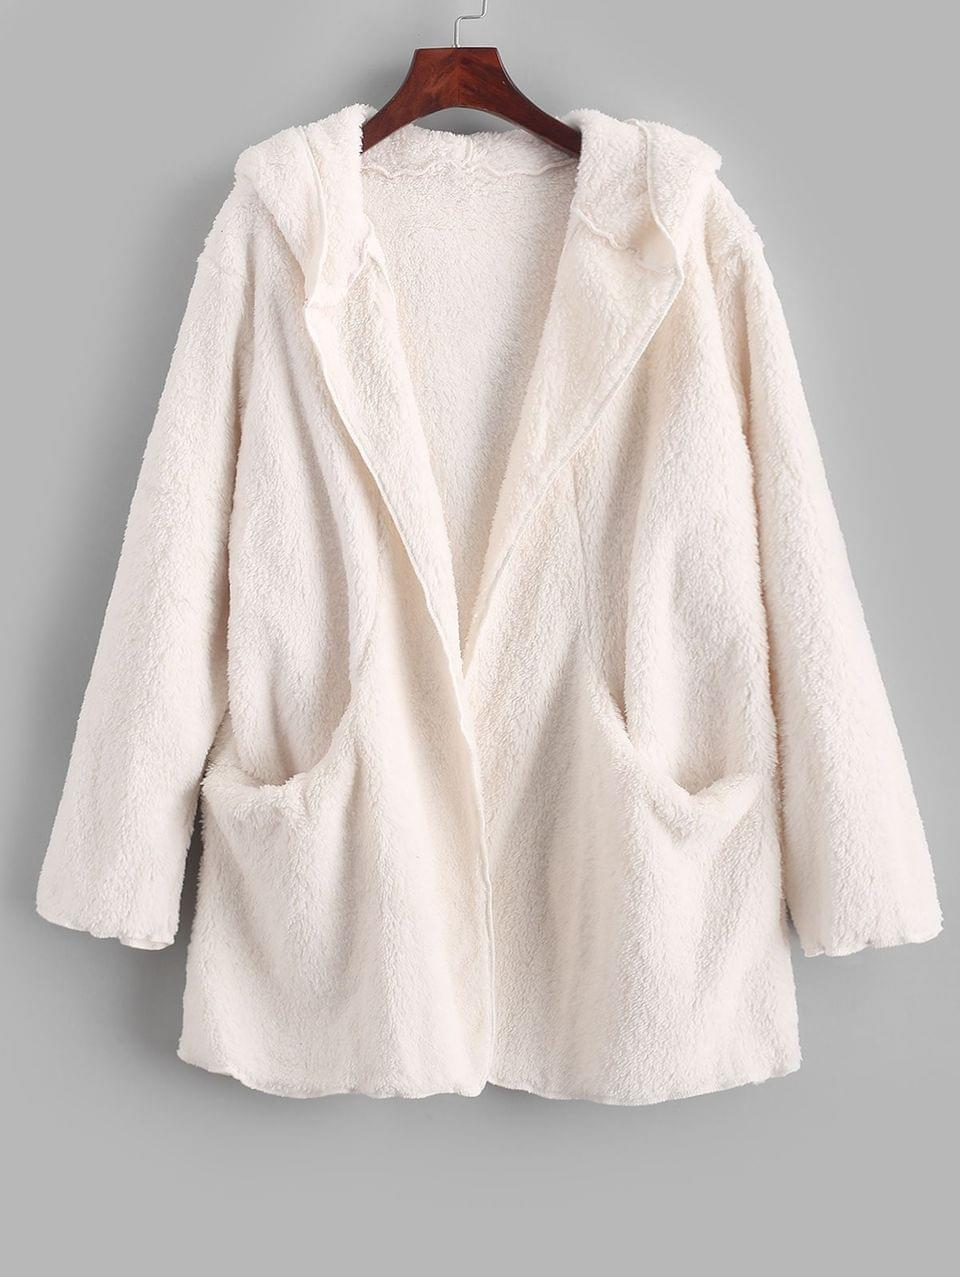 Women's Solid Color Pockets Hooded Teddy Coat - White Xl